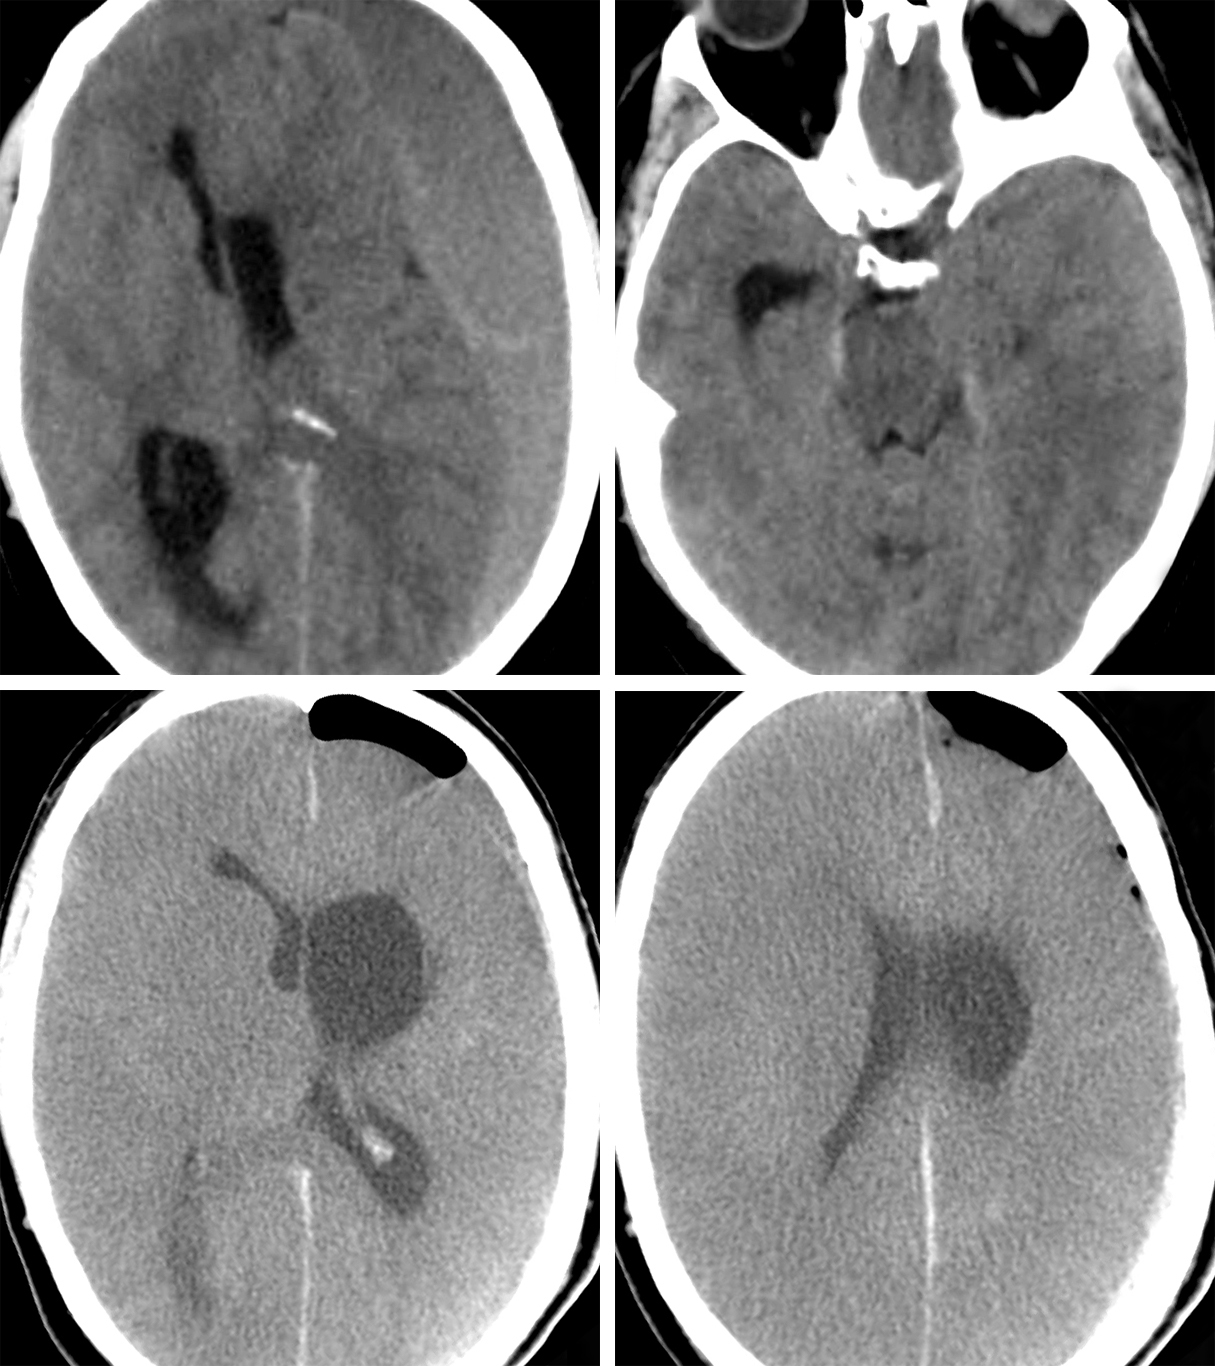 Figure 7: This unfortunate and relatively young male presented with only mild confusion (top row images-note the early sign of brain herniation-right upper image) to an outside institution. Surgery was postponed to the next day due to the patient's regular use of the aspirin and the presumed need for platelete infusion. This patient acutely deteriorated next morning and underwent emergent burr hole decompression. Despite adequate hematoma evacuation, it is apparent that preoperative cerebral herniation immediately before surgery most likely led to diffuse cerebral ischemia (bottom row images). The patient subsequently expired.